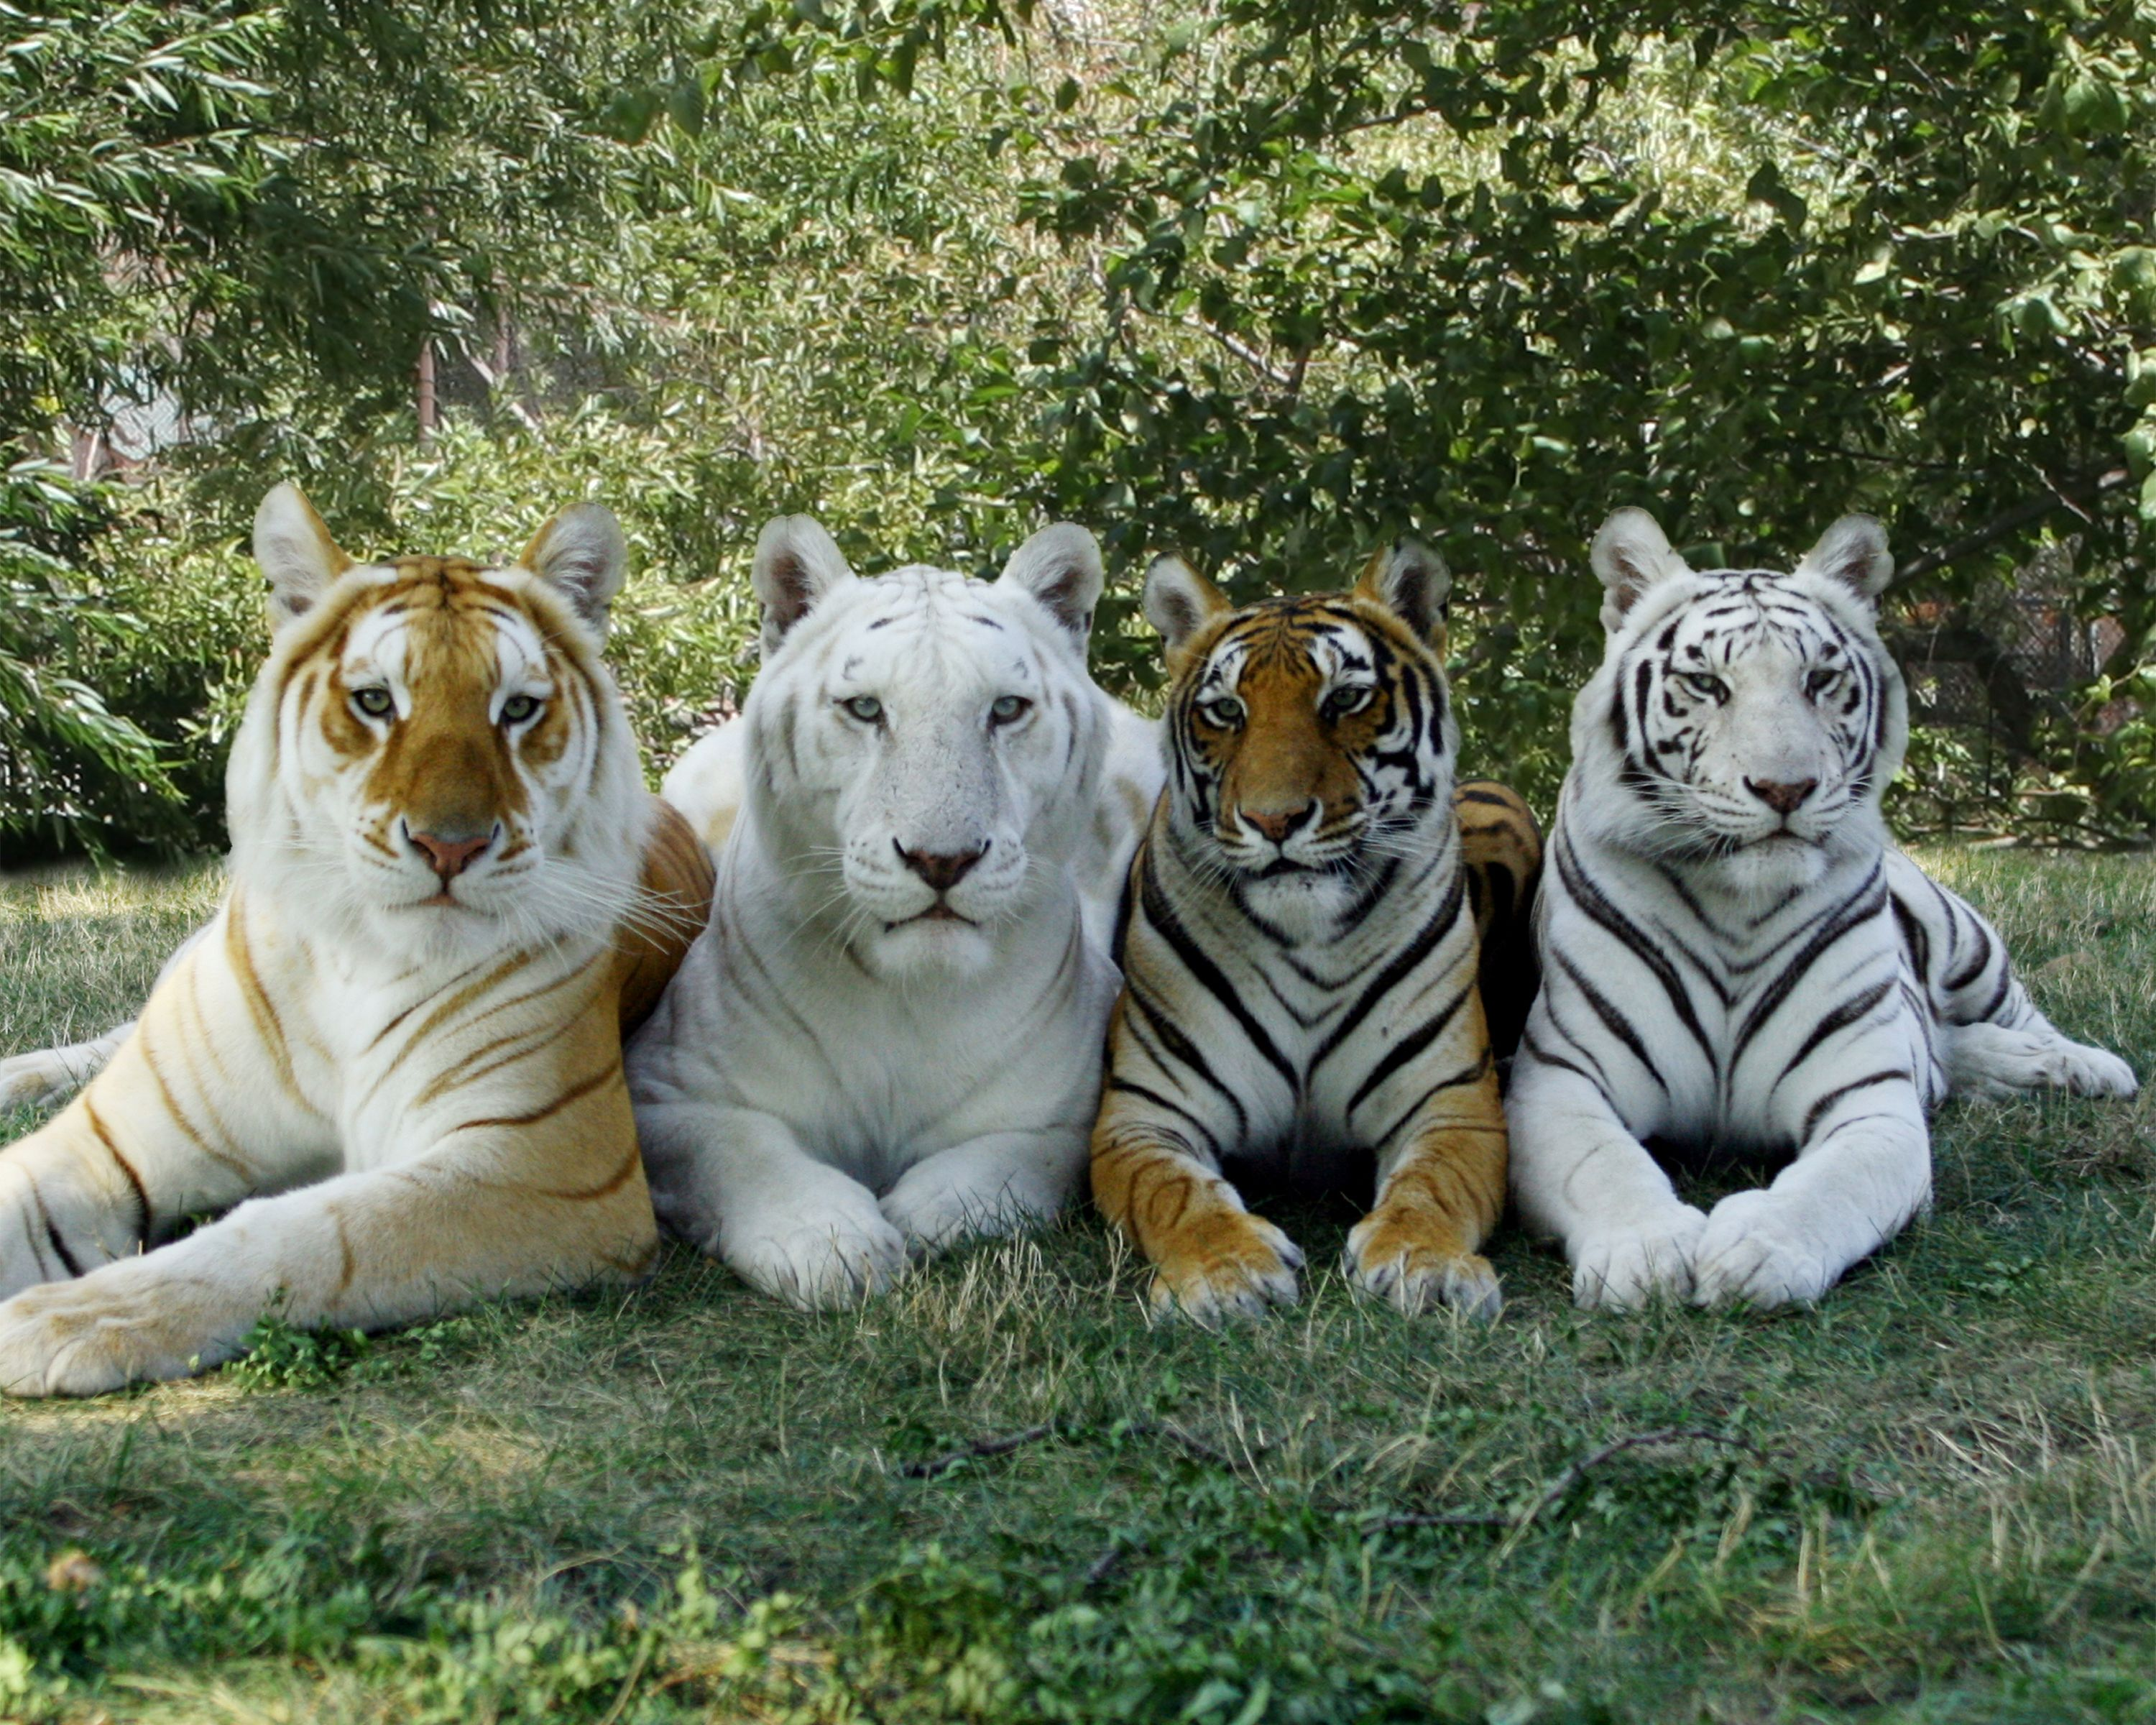 Featured here are 4 of our cherished Bengal friends, stars